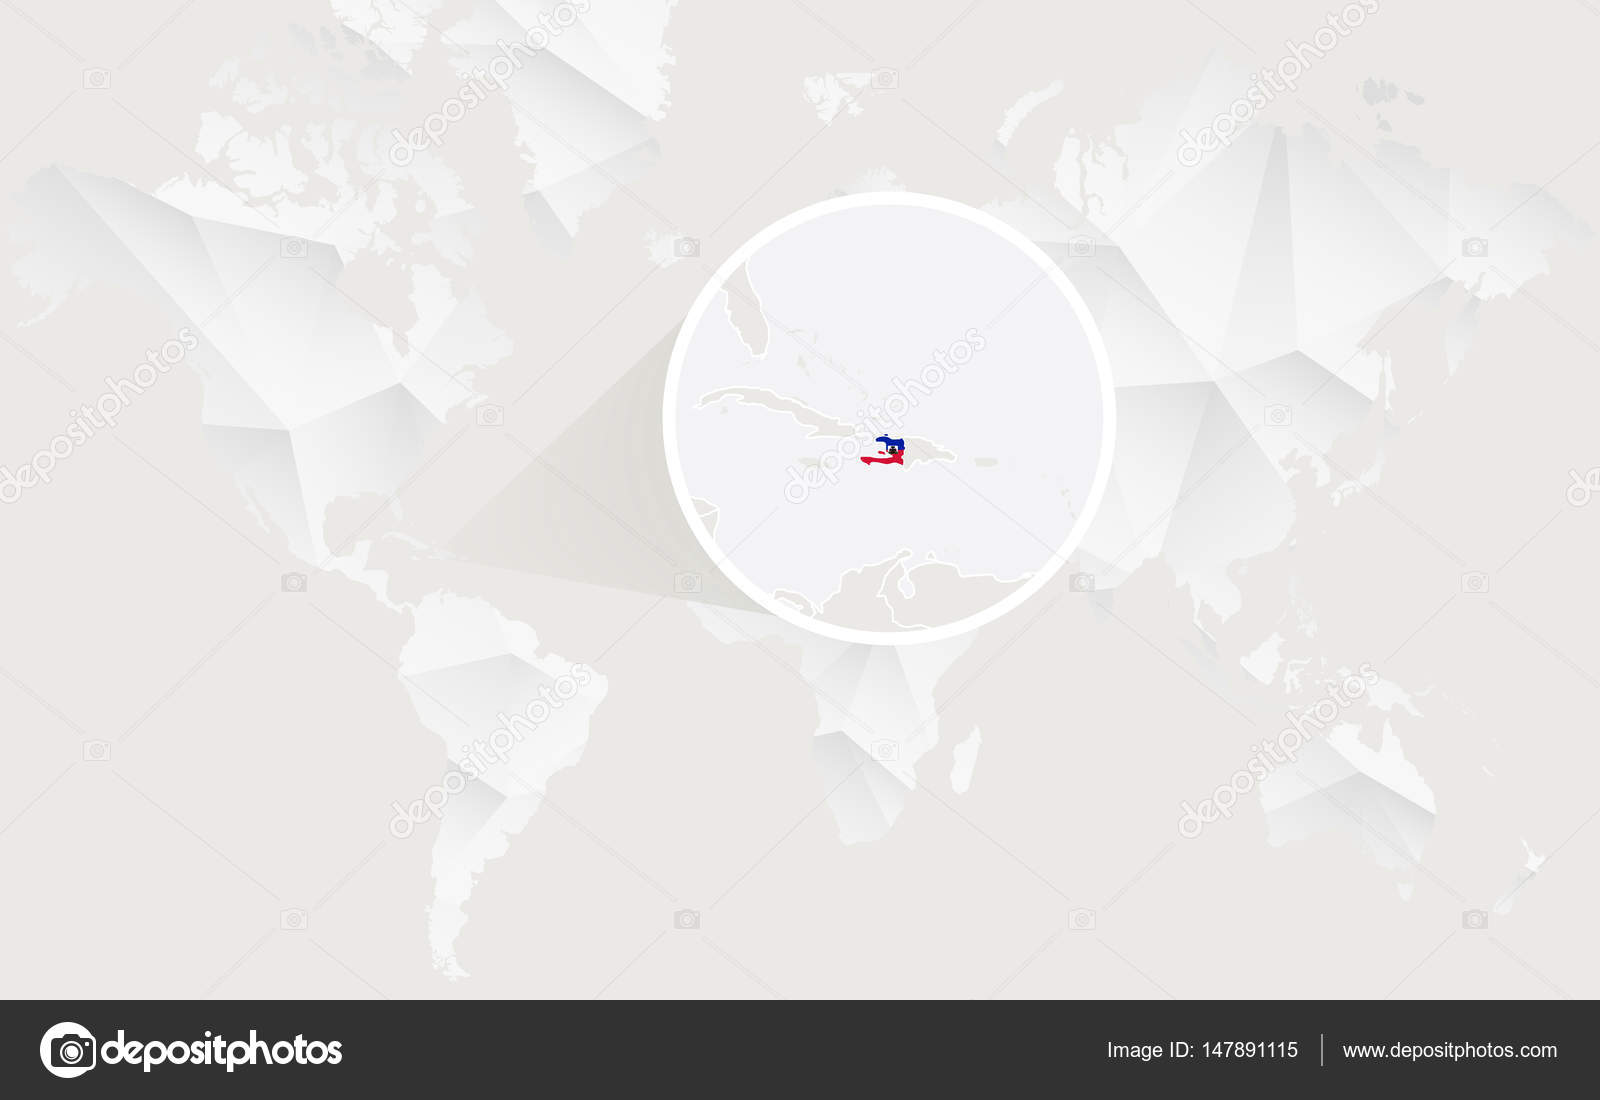 Haiti On Map Of World.Haiti Map With Flag In Contour On White Polygonal World Map Stock